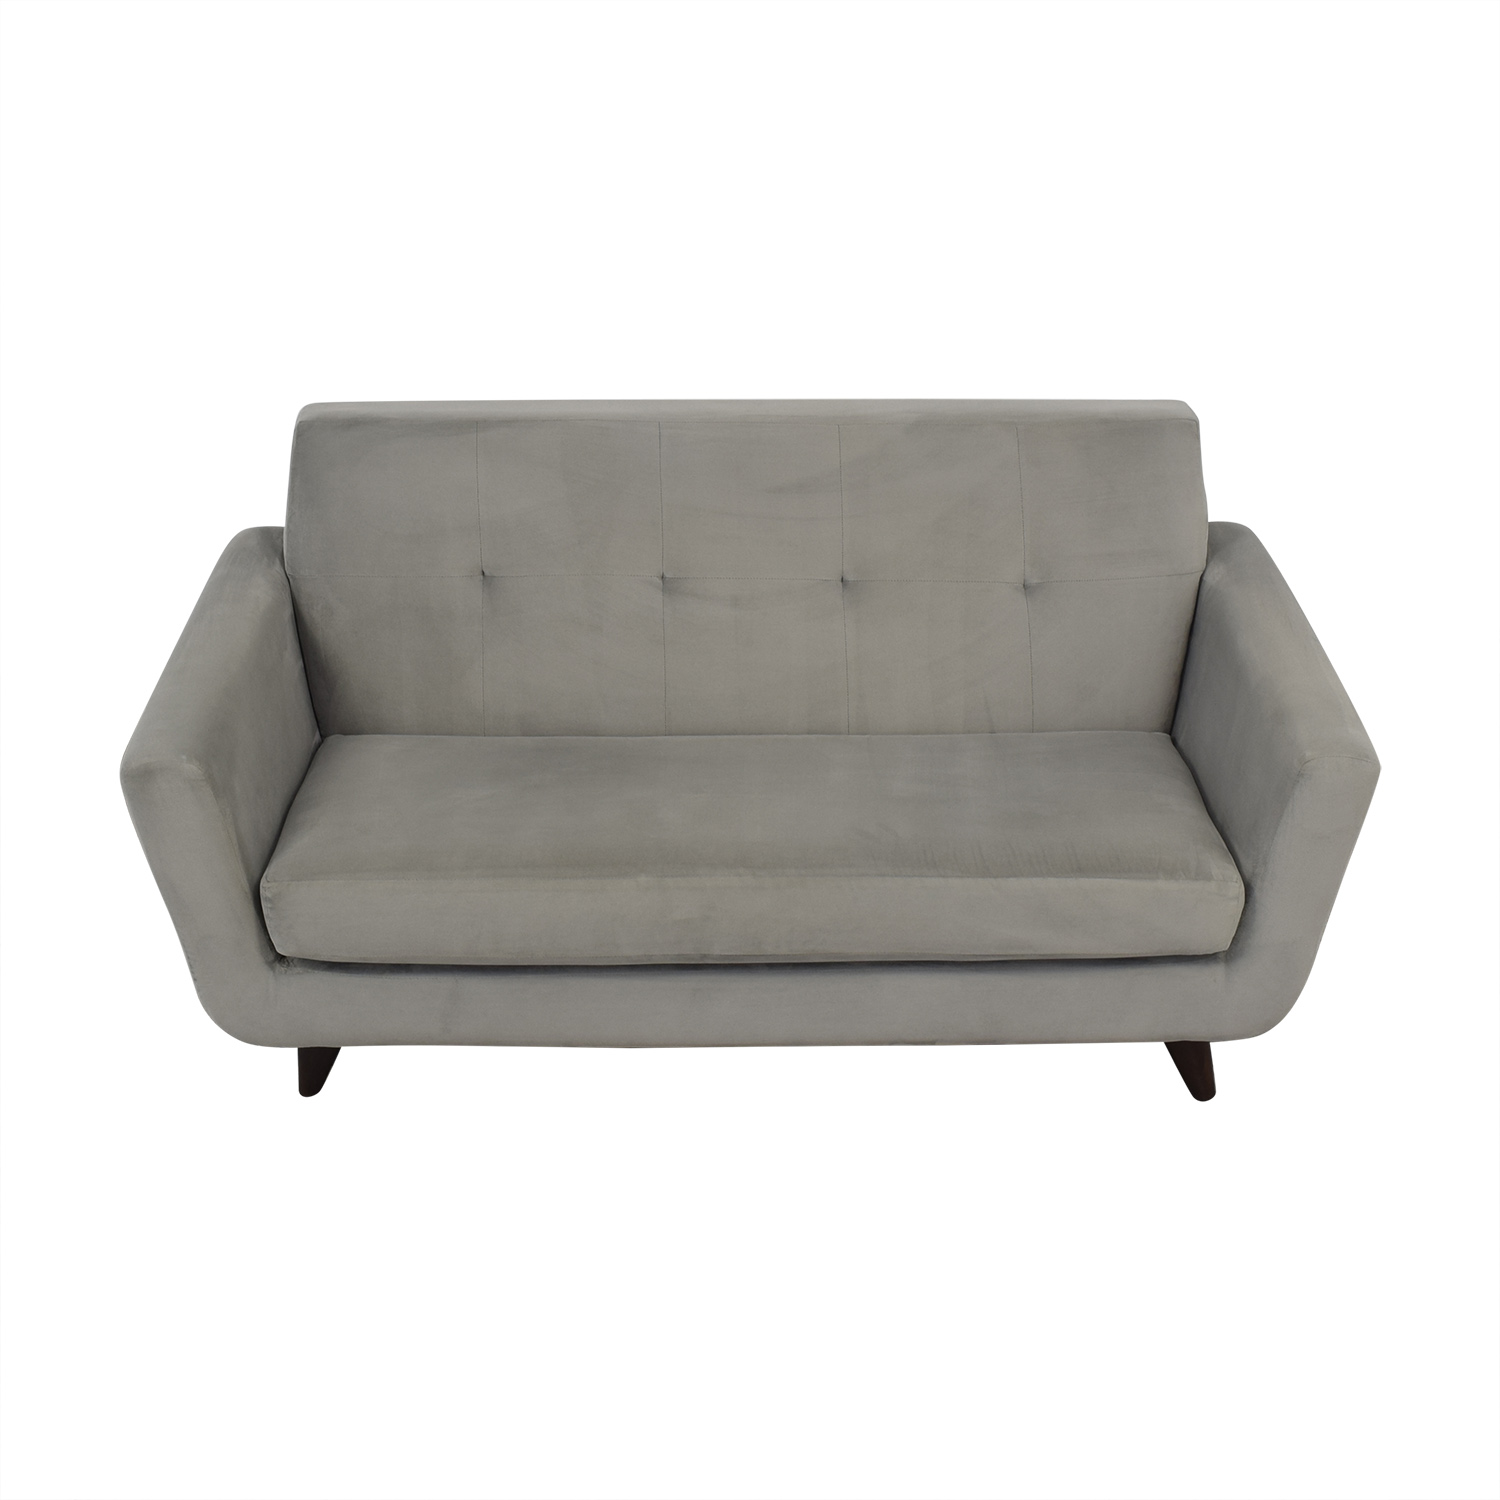 Joybird Joybird Hughes Apartment Sofa second hand